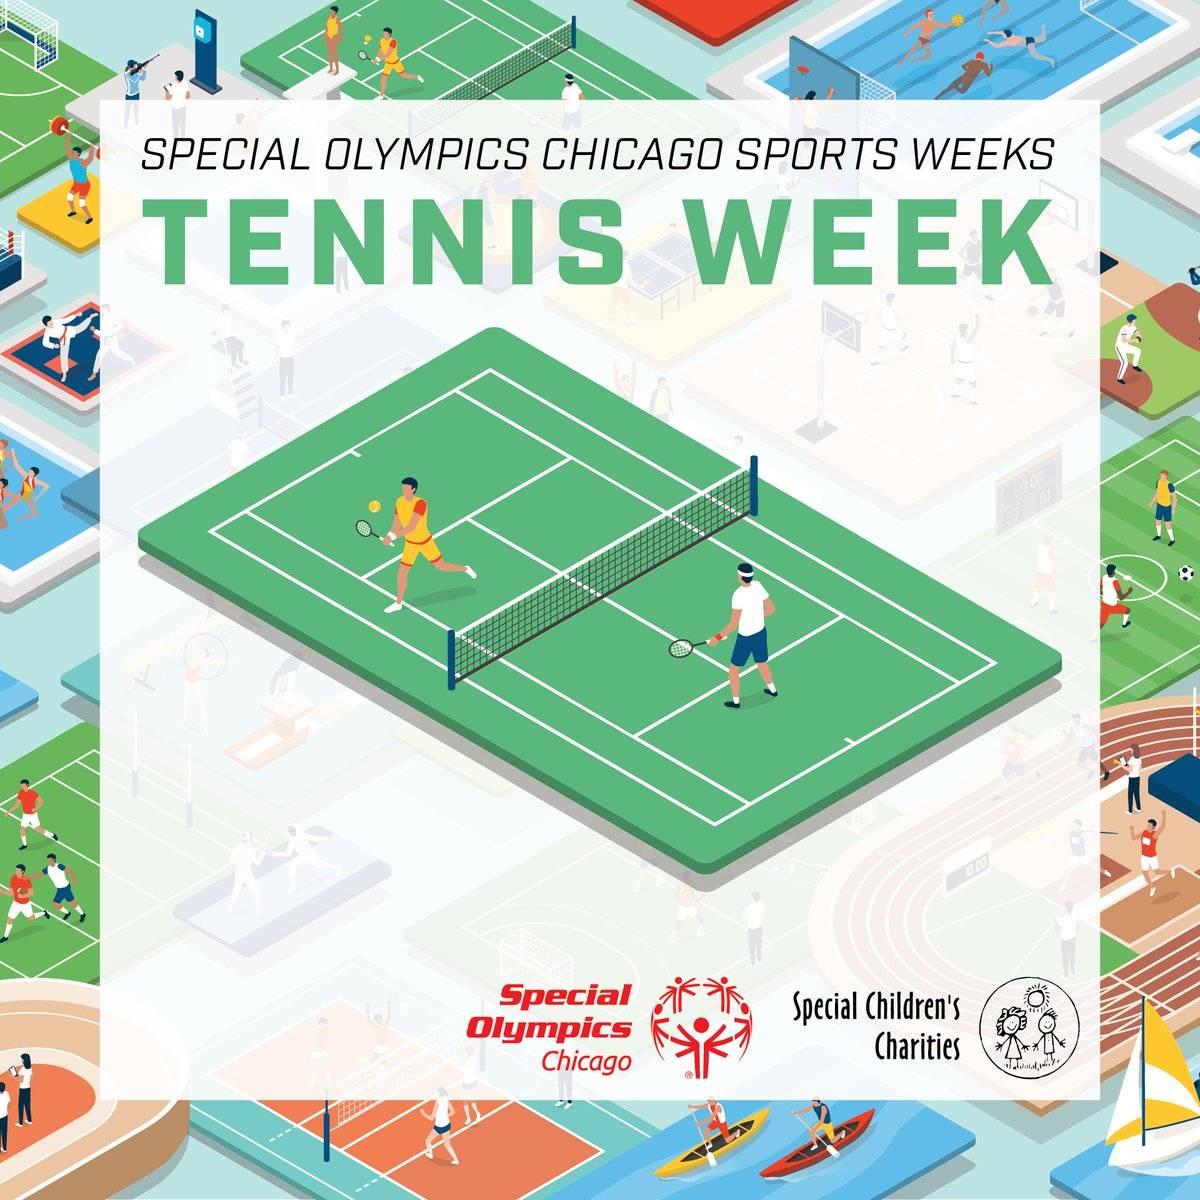 Don't forget: If any of our athletes have videos or images or you playing Tennis please share and send to us so we can feature you on Friday! Email your images to scc@sochicago.org or comment below https://t.co/uSlVAAy4vT